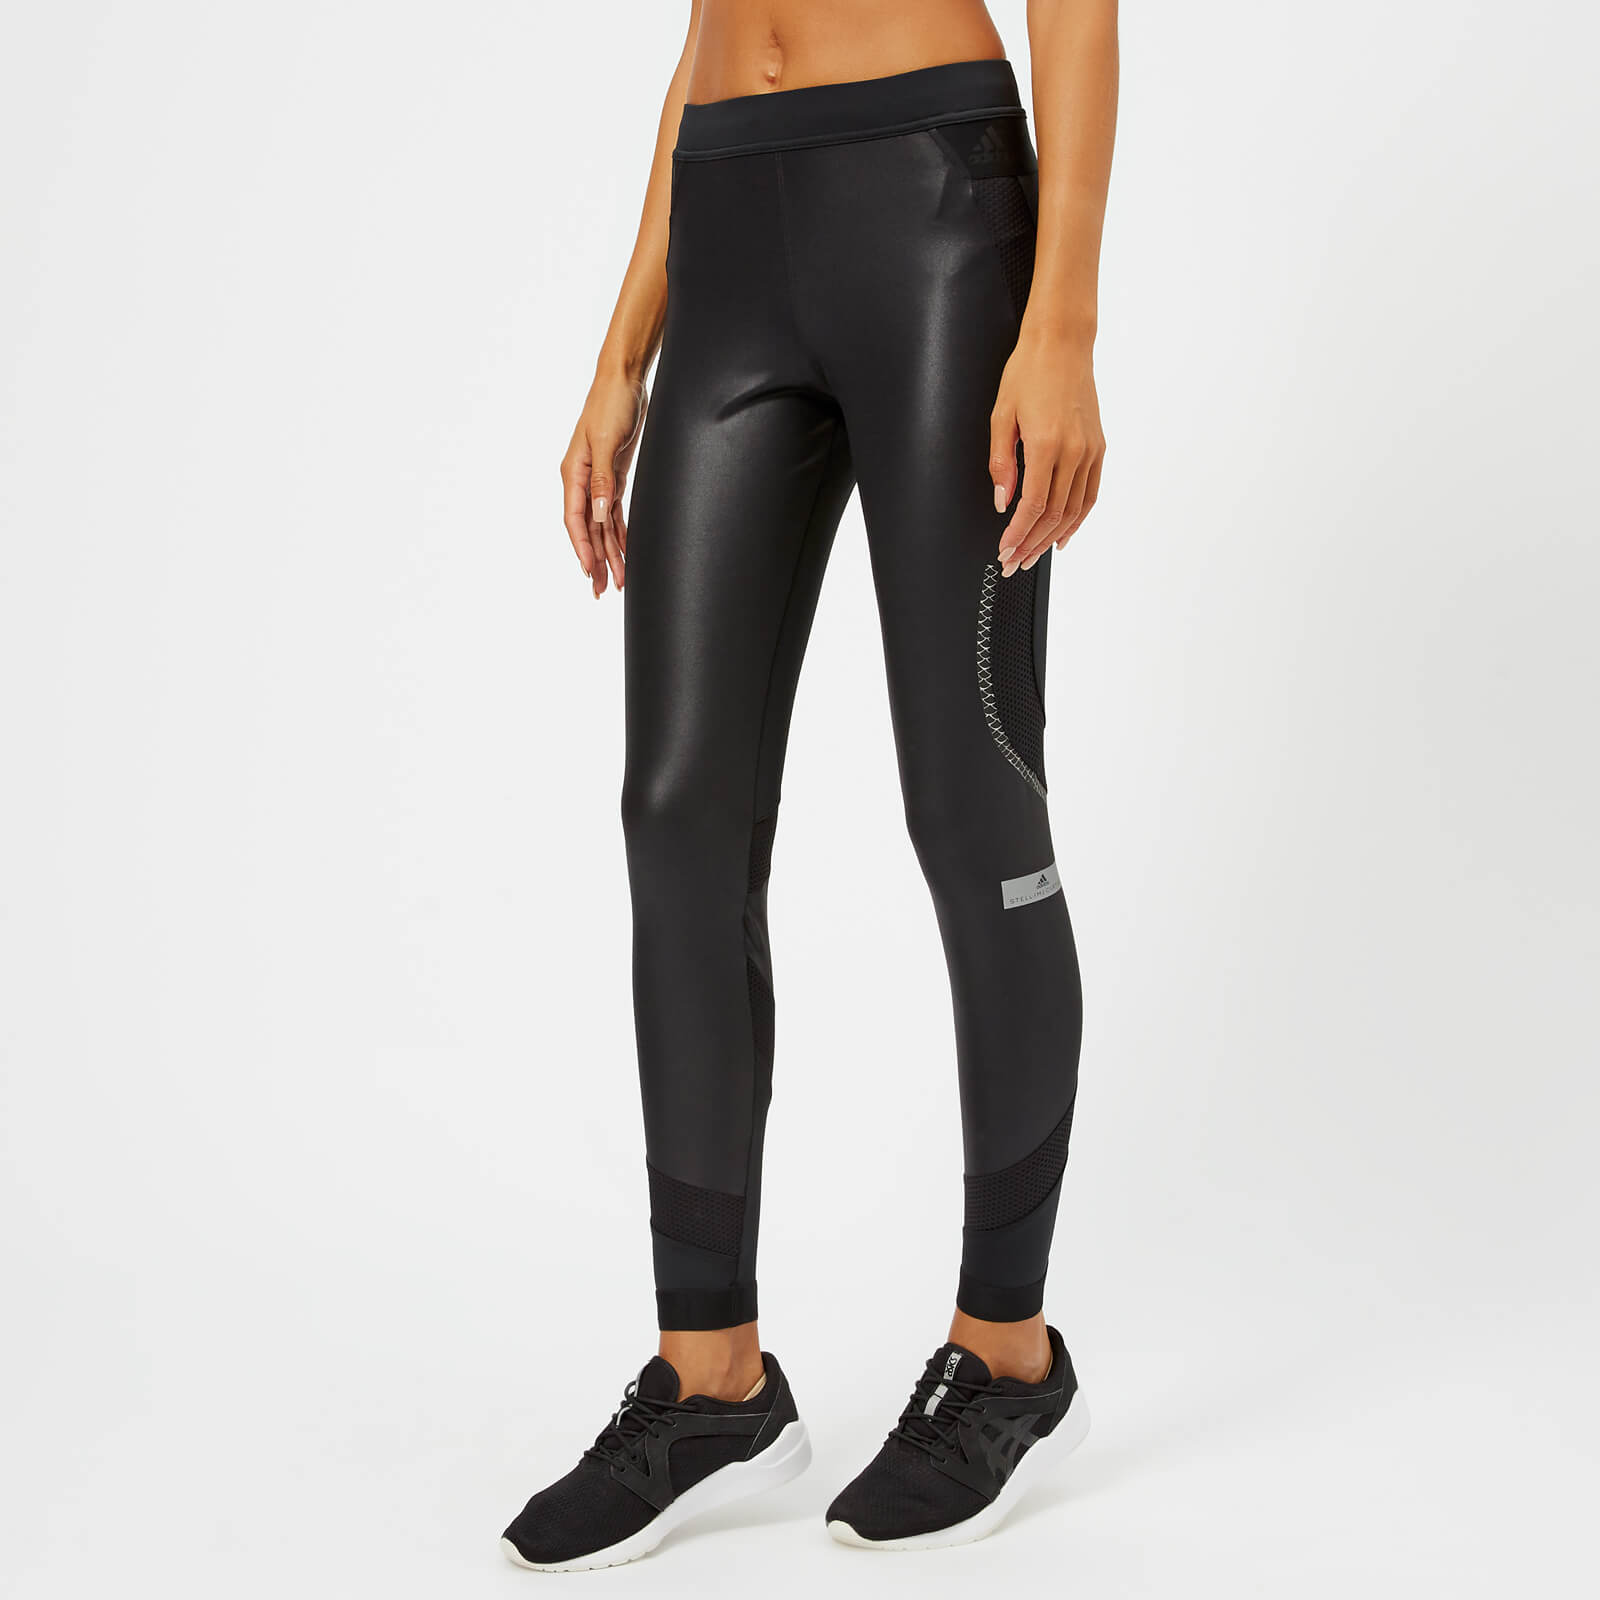 f735c25cceeeb3 adidas by Stella McCartney Women's Run Long Tights - Black - Free UK  Delivery over £50